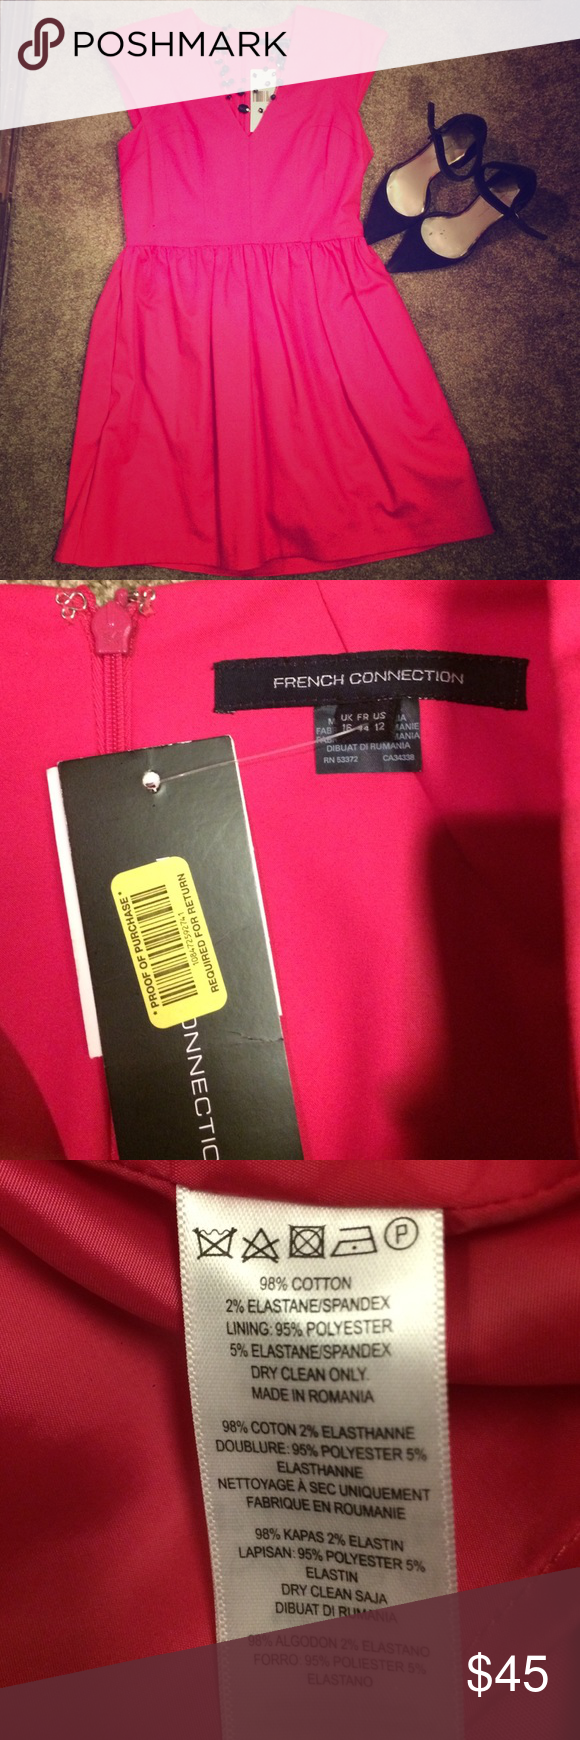 French connection dress size 12 This French connection dress is fully lined, sexy hot pink dress . It's reposhed and never worn, just isn't my style. French Connection Dresses Midi